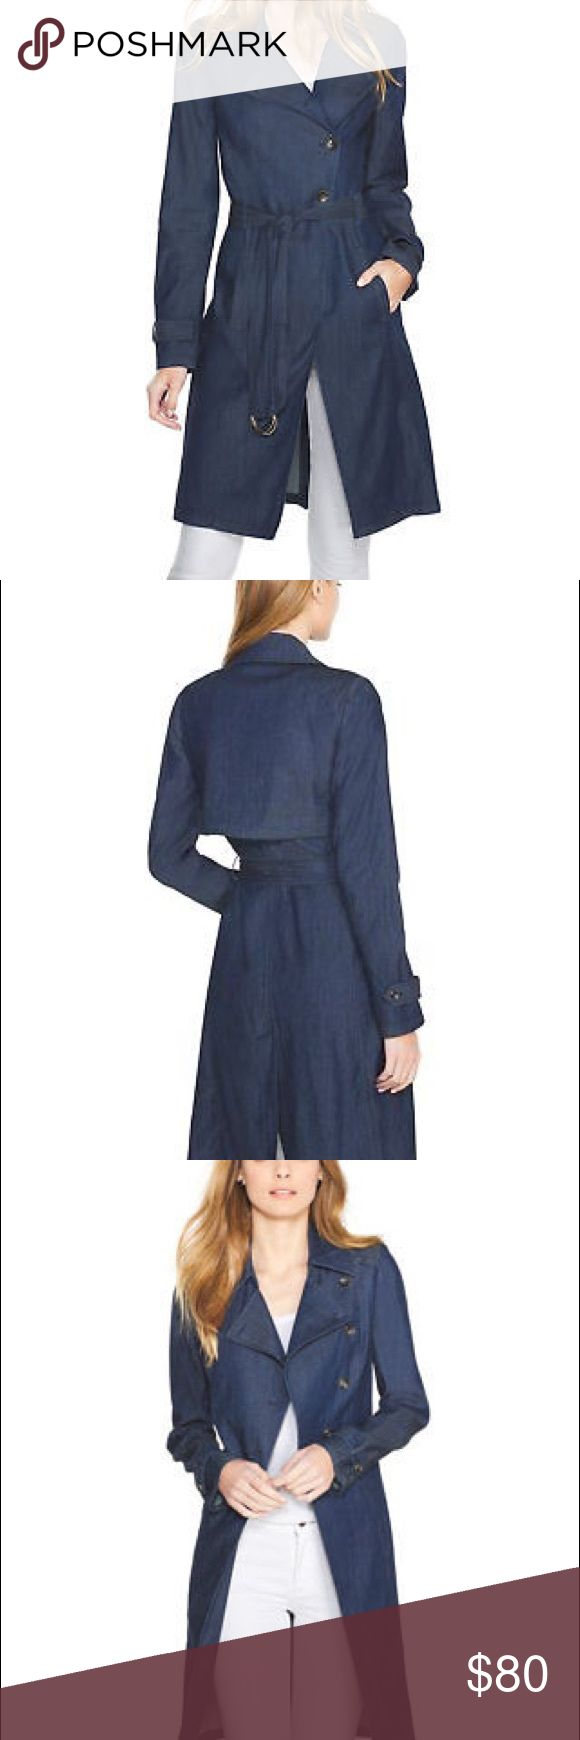 WHBM Blue Denim Tencel Trench Belted Coat New Rare WHBM DOUBLE BREATED MODERN TWIST DENIM TRENCH COAT NEW  Size XL (14-16)  SOLD OUT POPULAR DENIM TRENCH COAT FROM WHBM  BRAND NEW WITH TAGS!  GREAT SAVINGS OFF RETAIL PRICE!  PERFECT STYLE!  Double-breasted trench for women who crave tradition with a twist. We used the darkest-wash denim we could find and infused it with stretch for softness that is out of this world. White skinny jeans, offset this trench brilliantly.  Unlined…